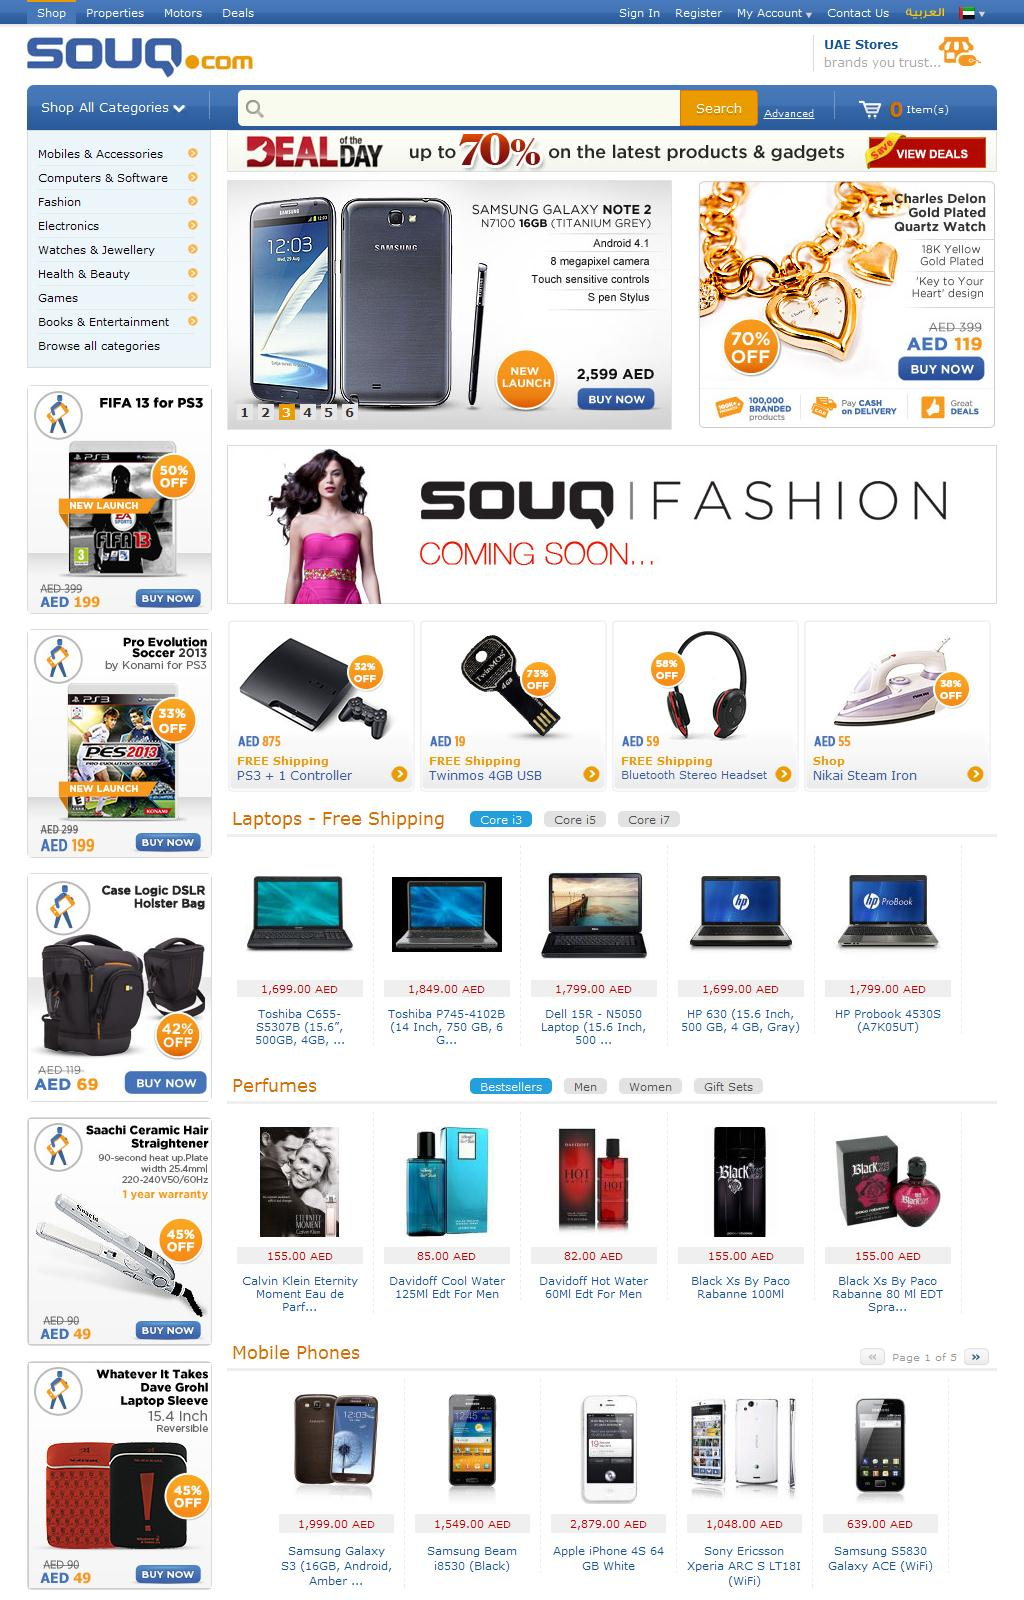 Shop in Dubai, Abu Dhabi, UAE | Shopping for Electronics, Computers, Mobile Phones, Fashion Brands, Clothing and more Online Shopping Deals | Souq